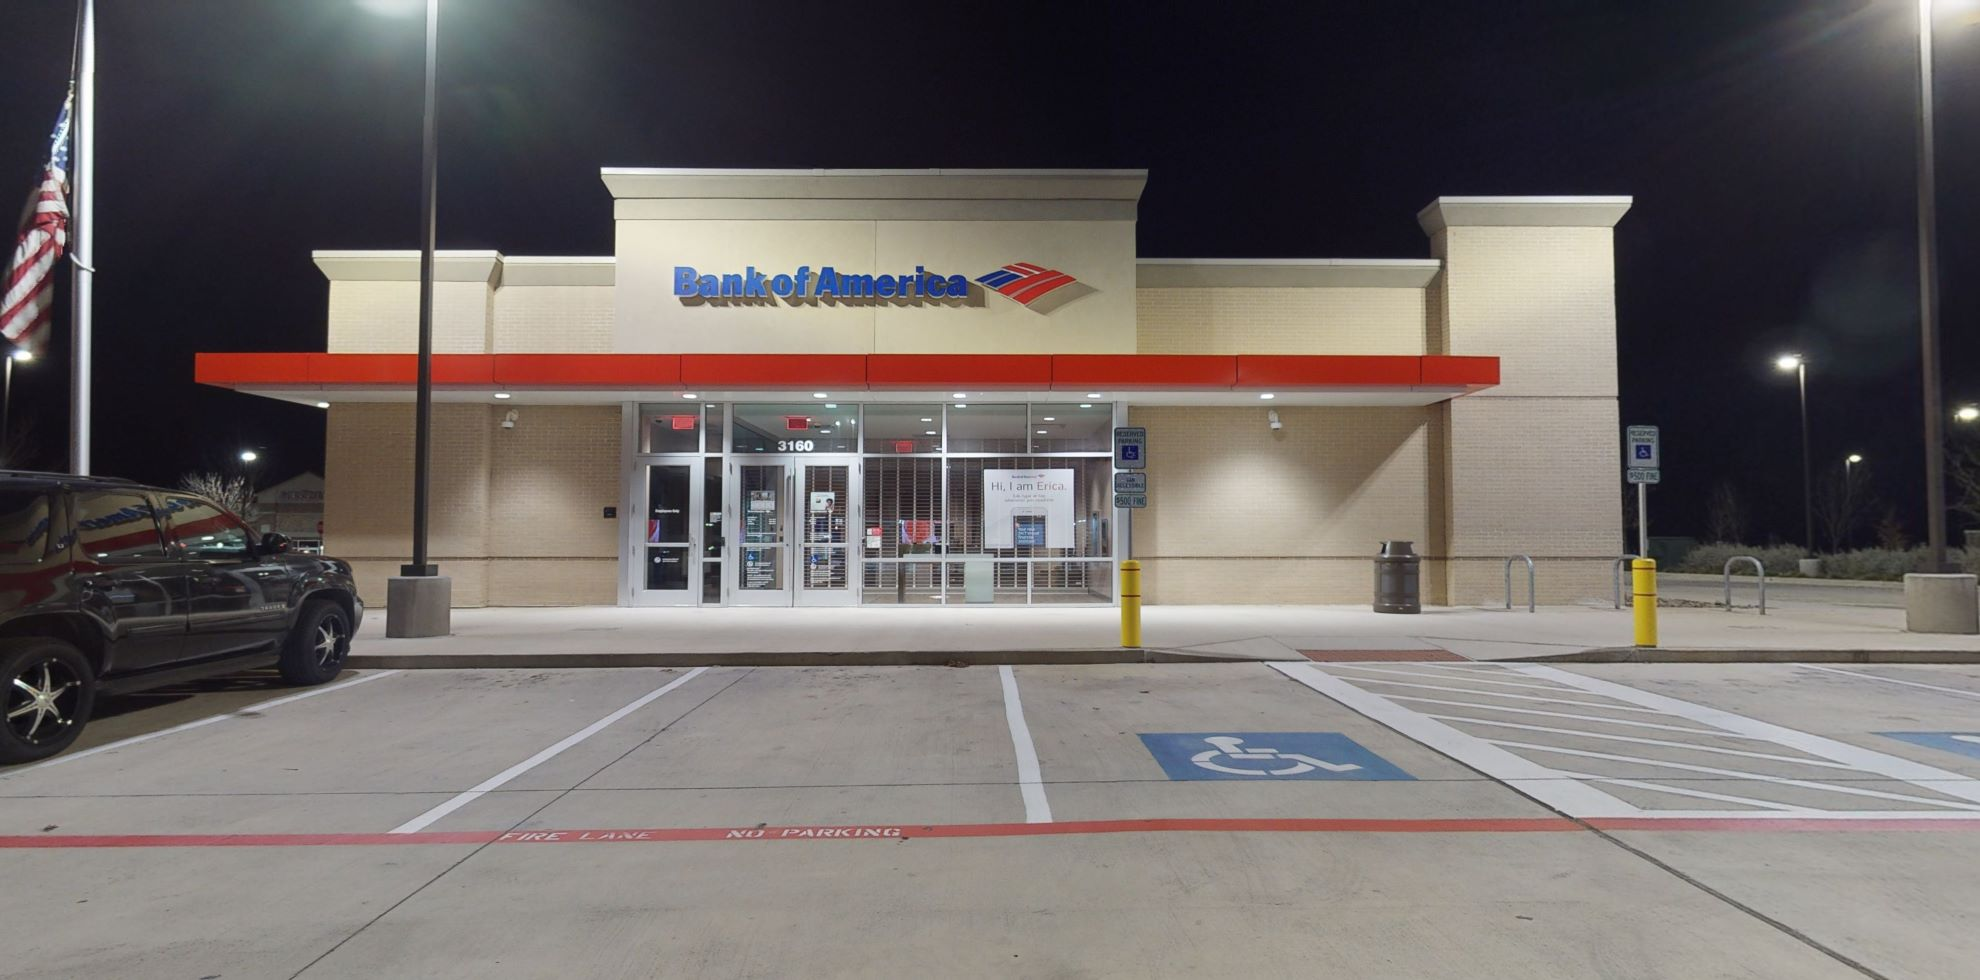 Bank of America financial center with drive-thru ATM | 3160 E Broad St, Mansfield, TX 76063